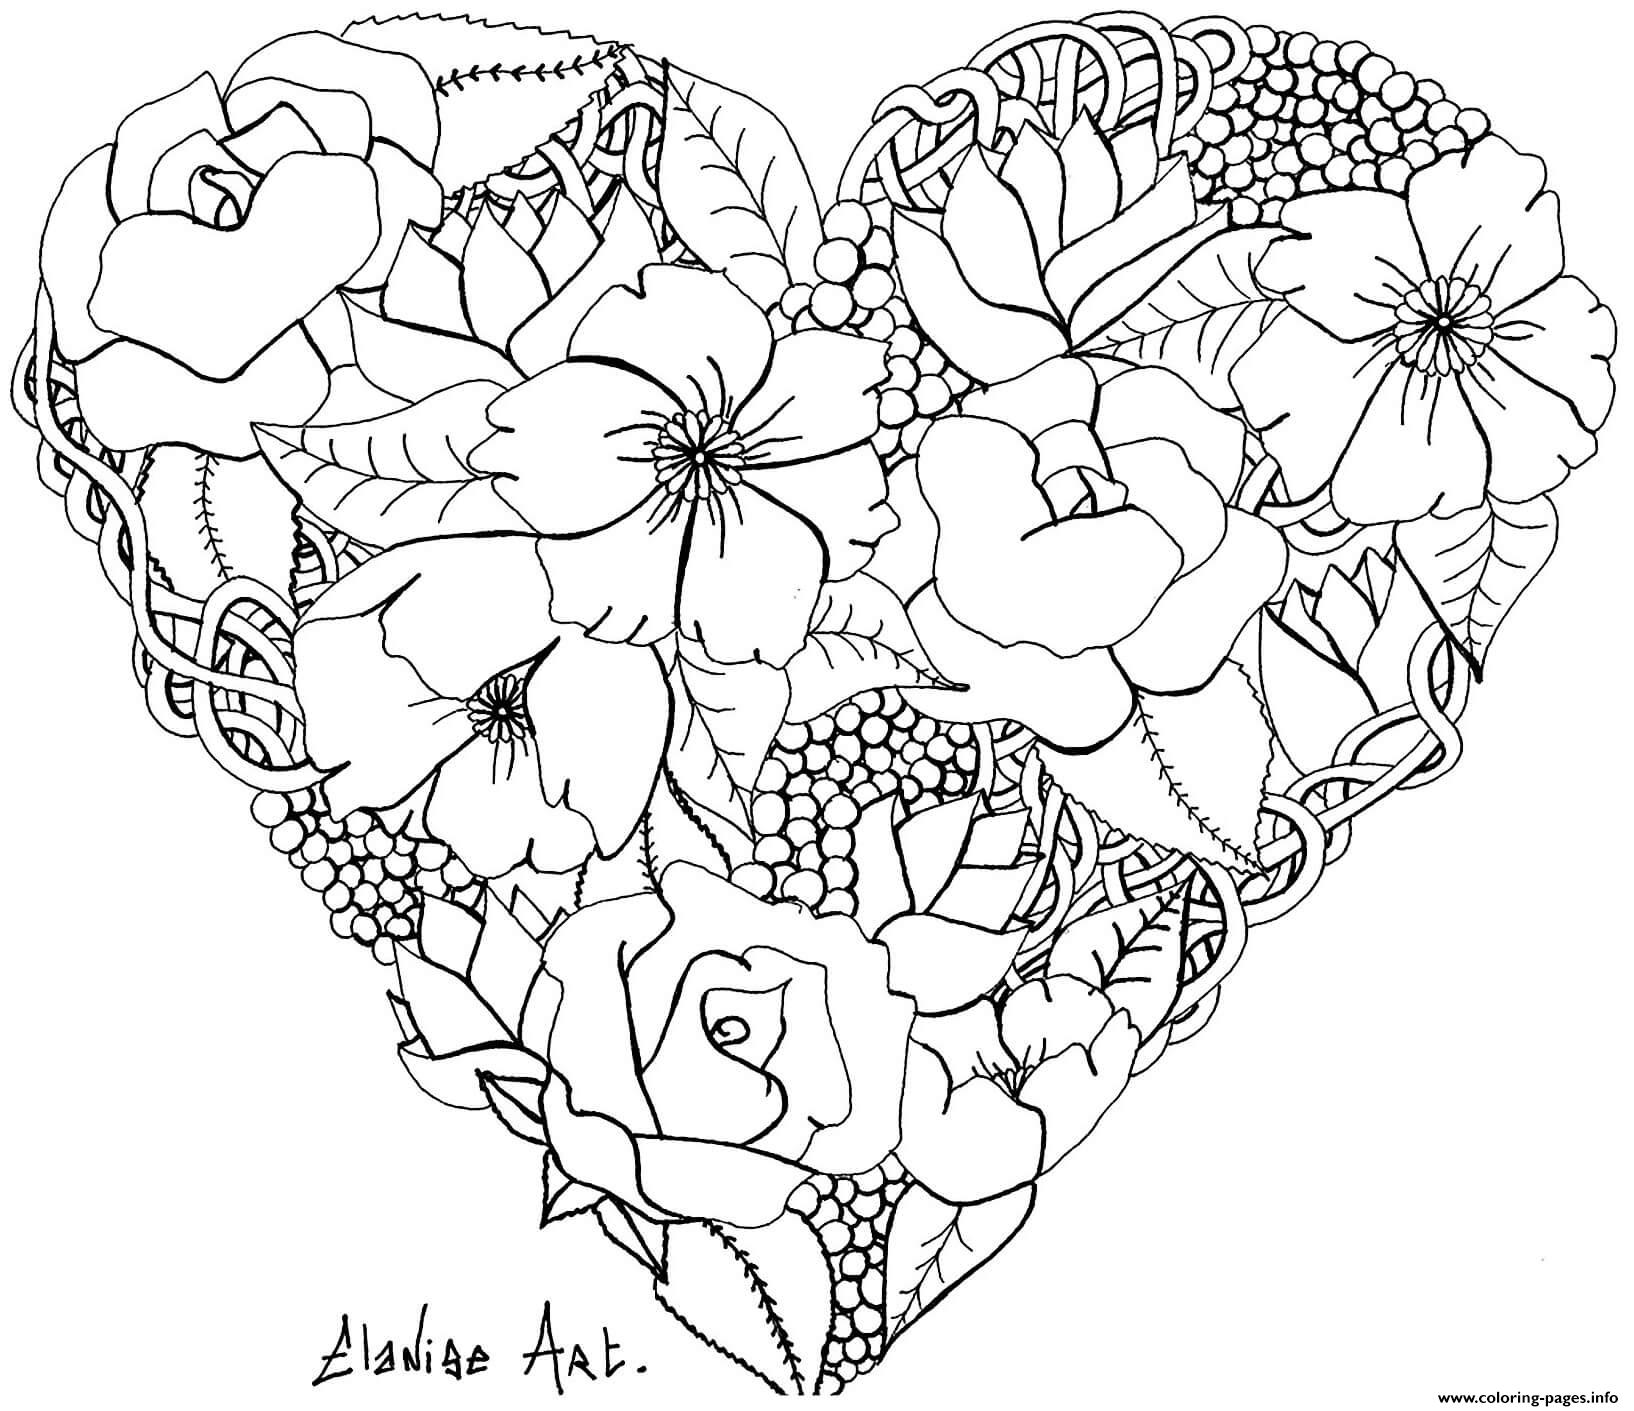 Adult Elanise Art Flowers In A Heart Coloring Pages Printable